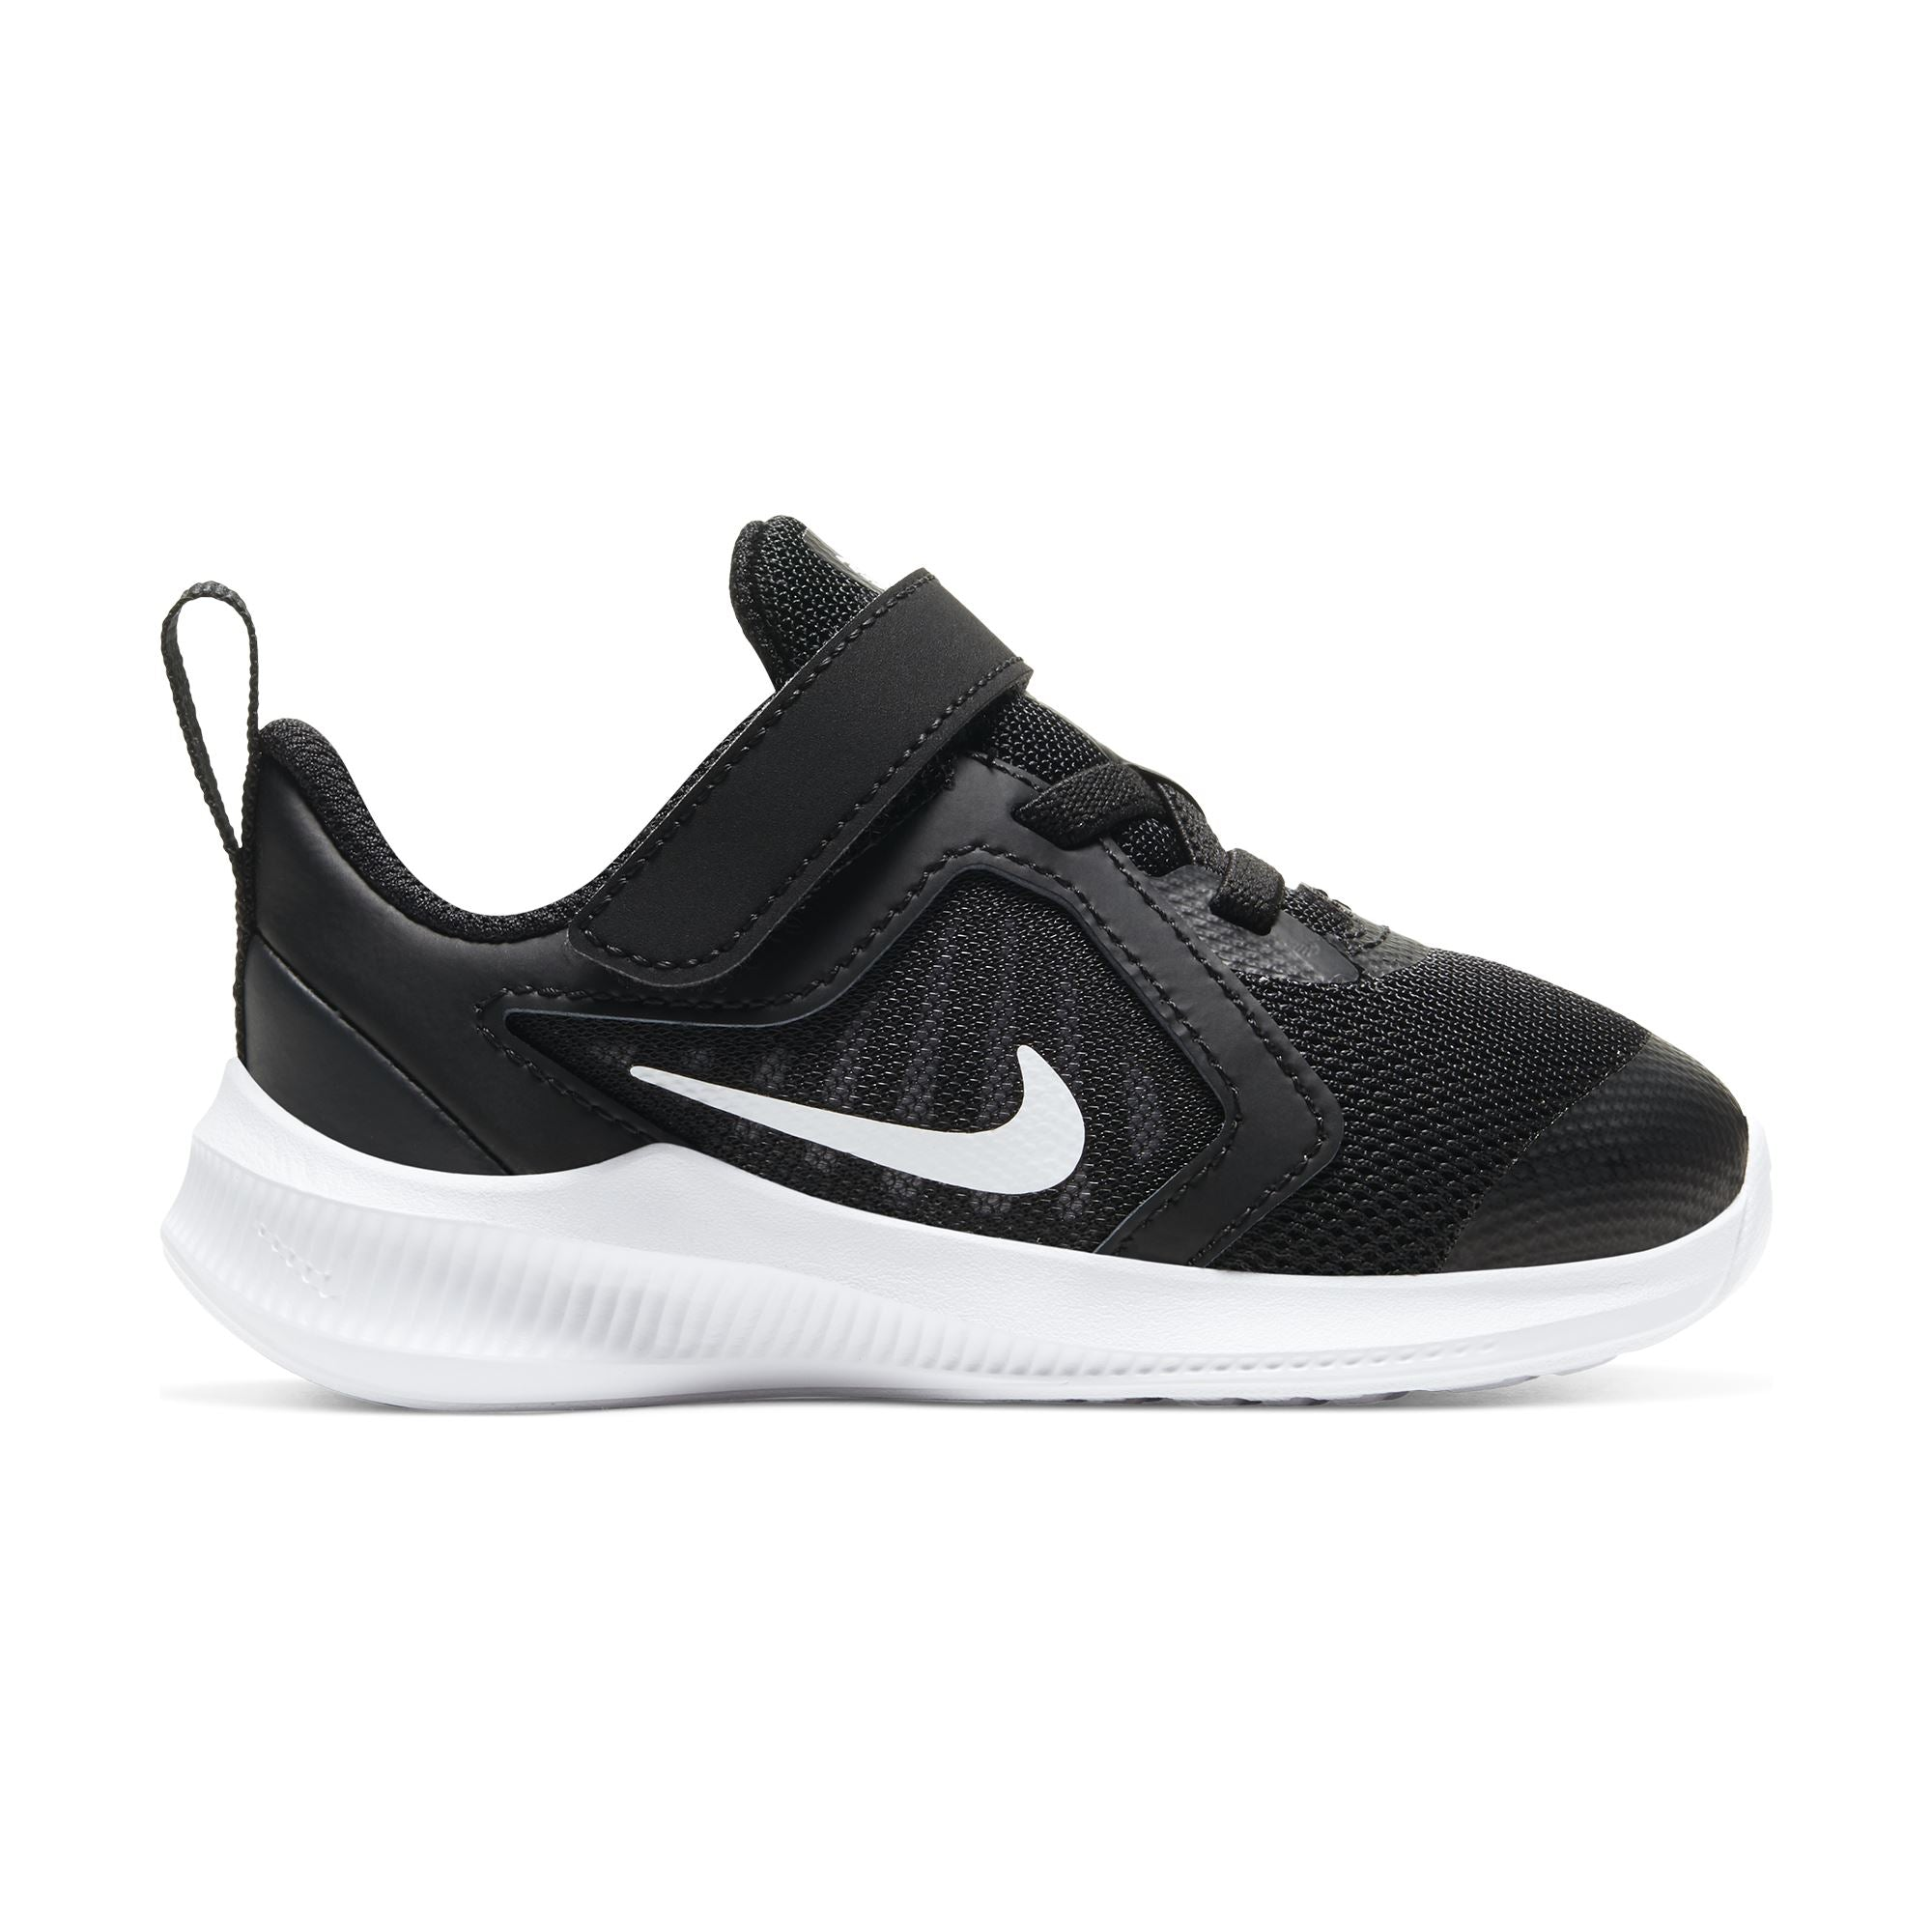 Nike Kids Downshifter 10 - Black/White-Anthracite SP-Footwear-Kids Nike